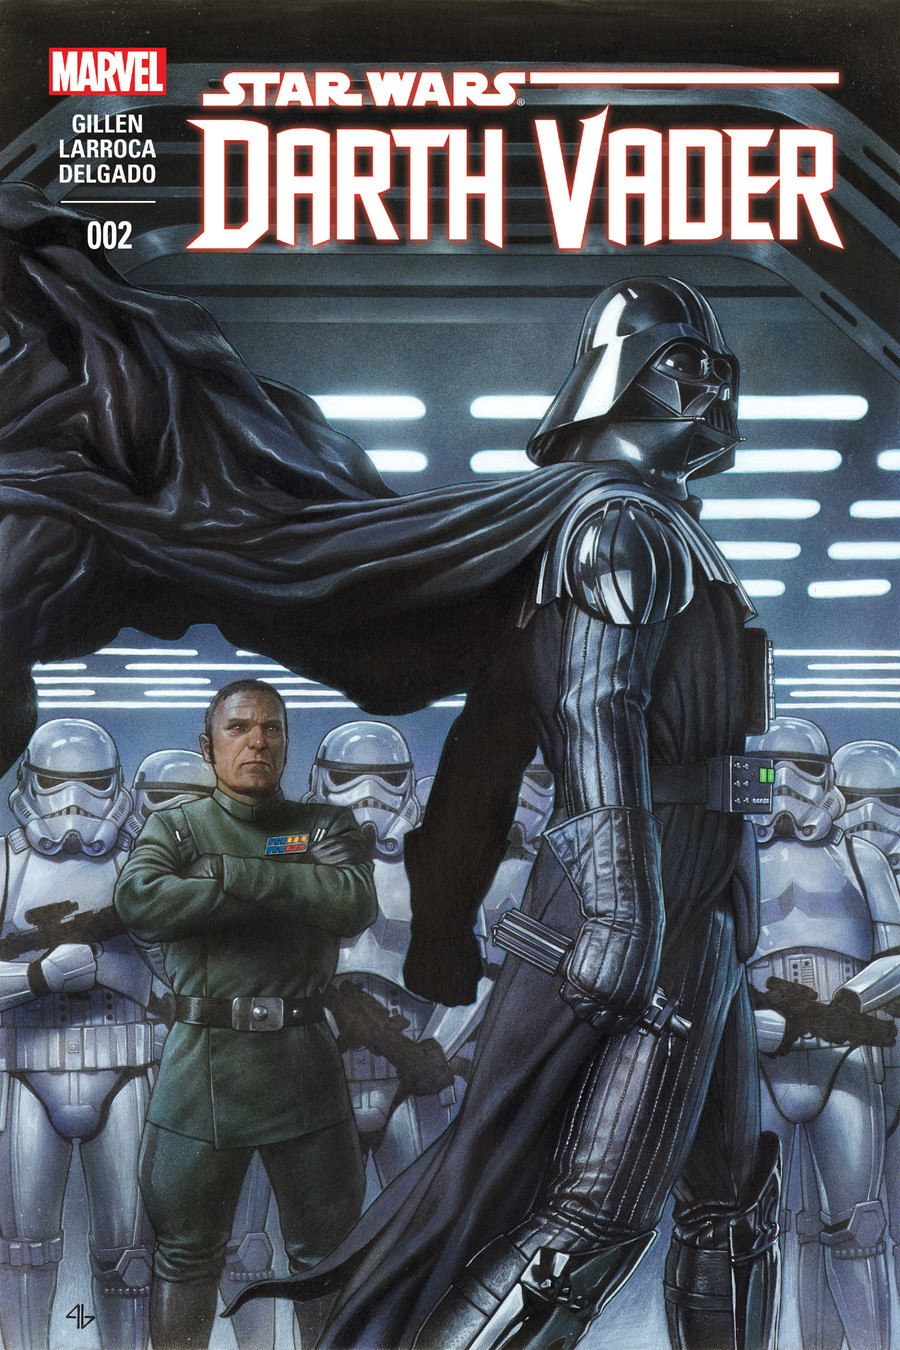 Star Wars Darth Vader issue 2. join list: StarWarsDarthVader (283 subs)Mention History Second issue of the canon Darth Vader comic Also, if you like these comic